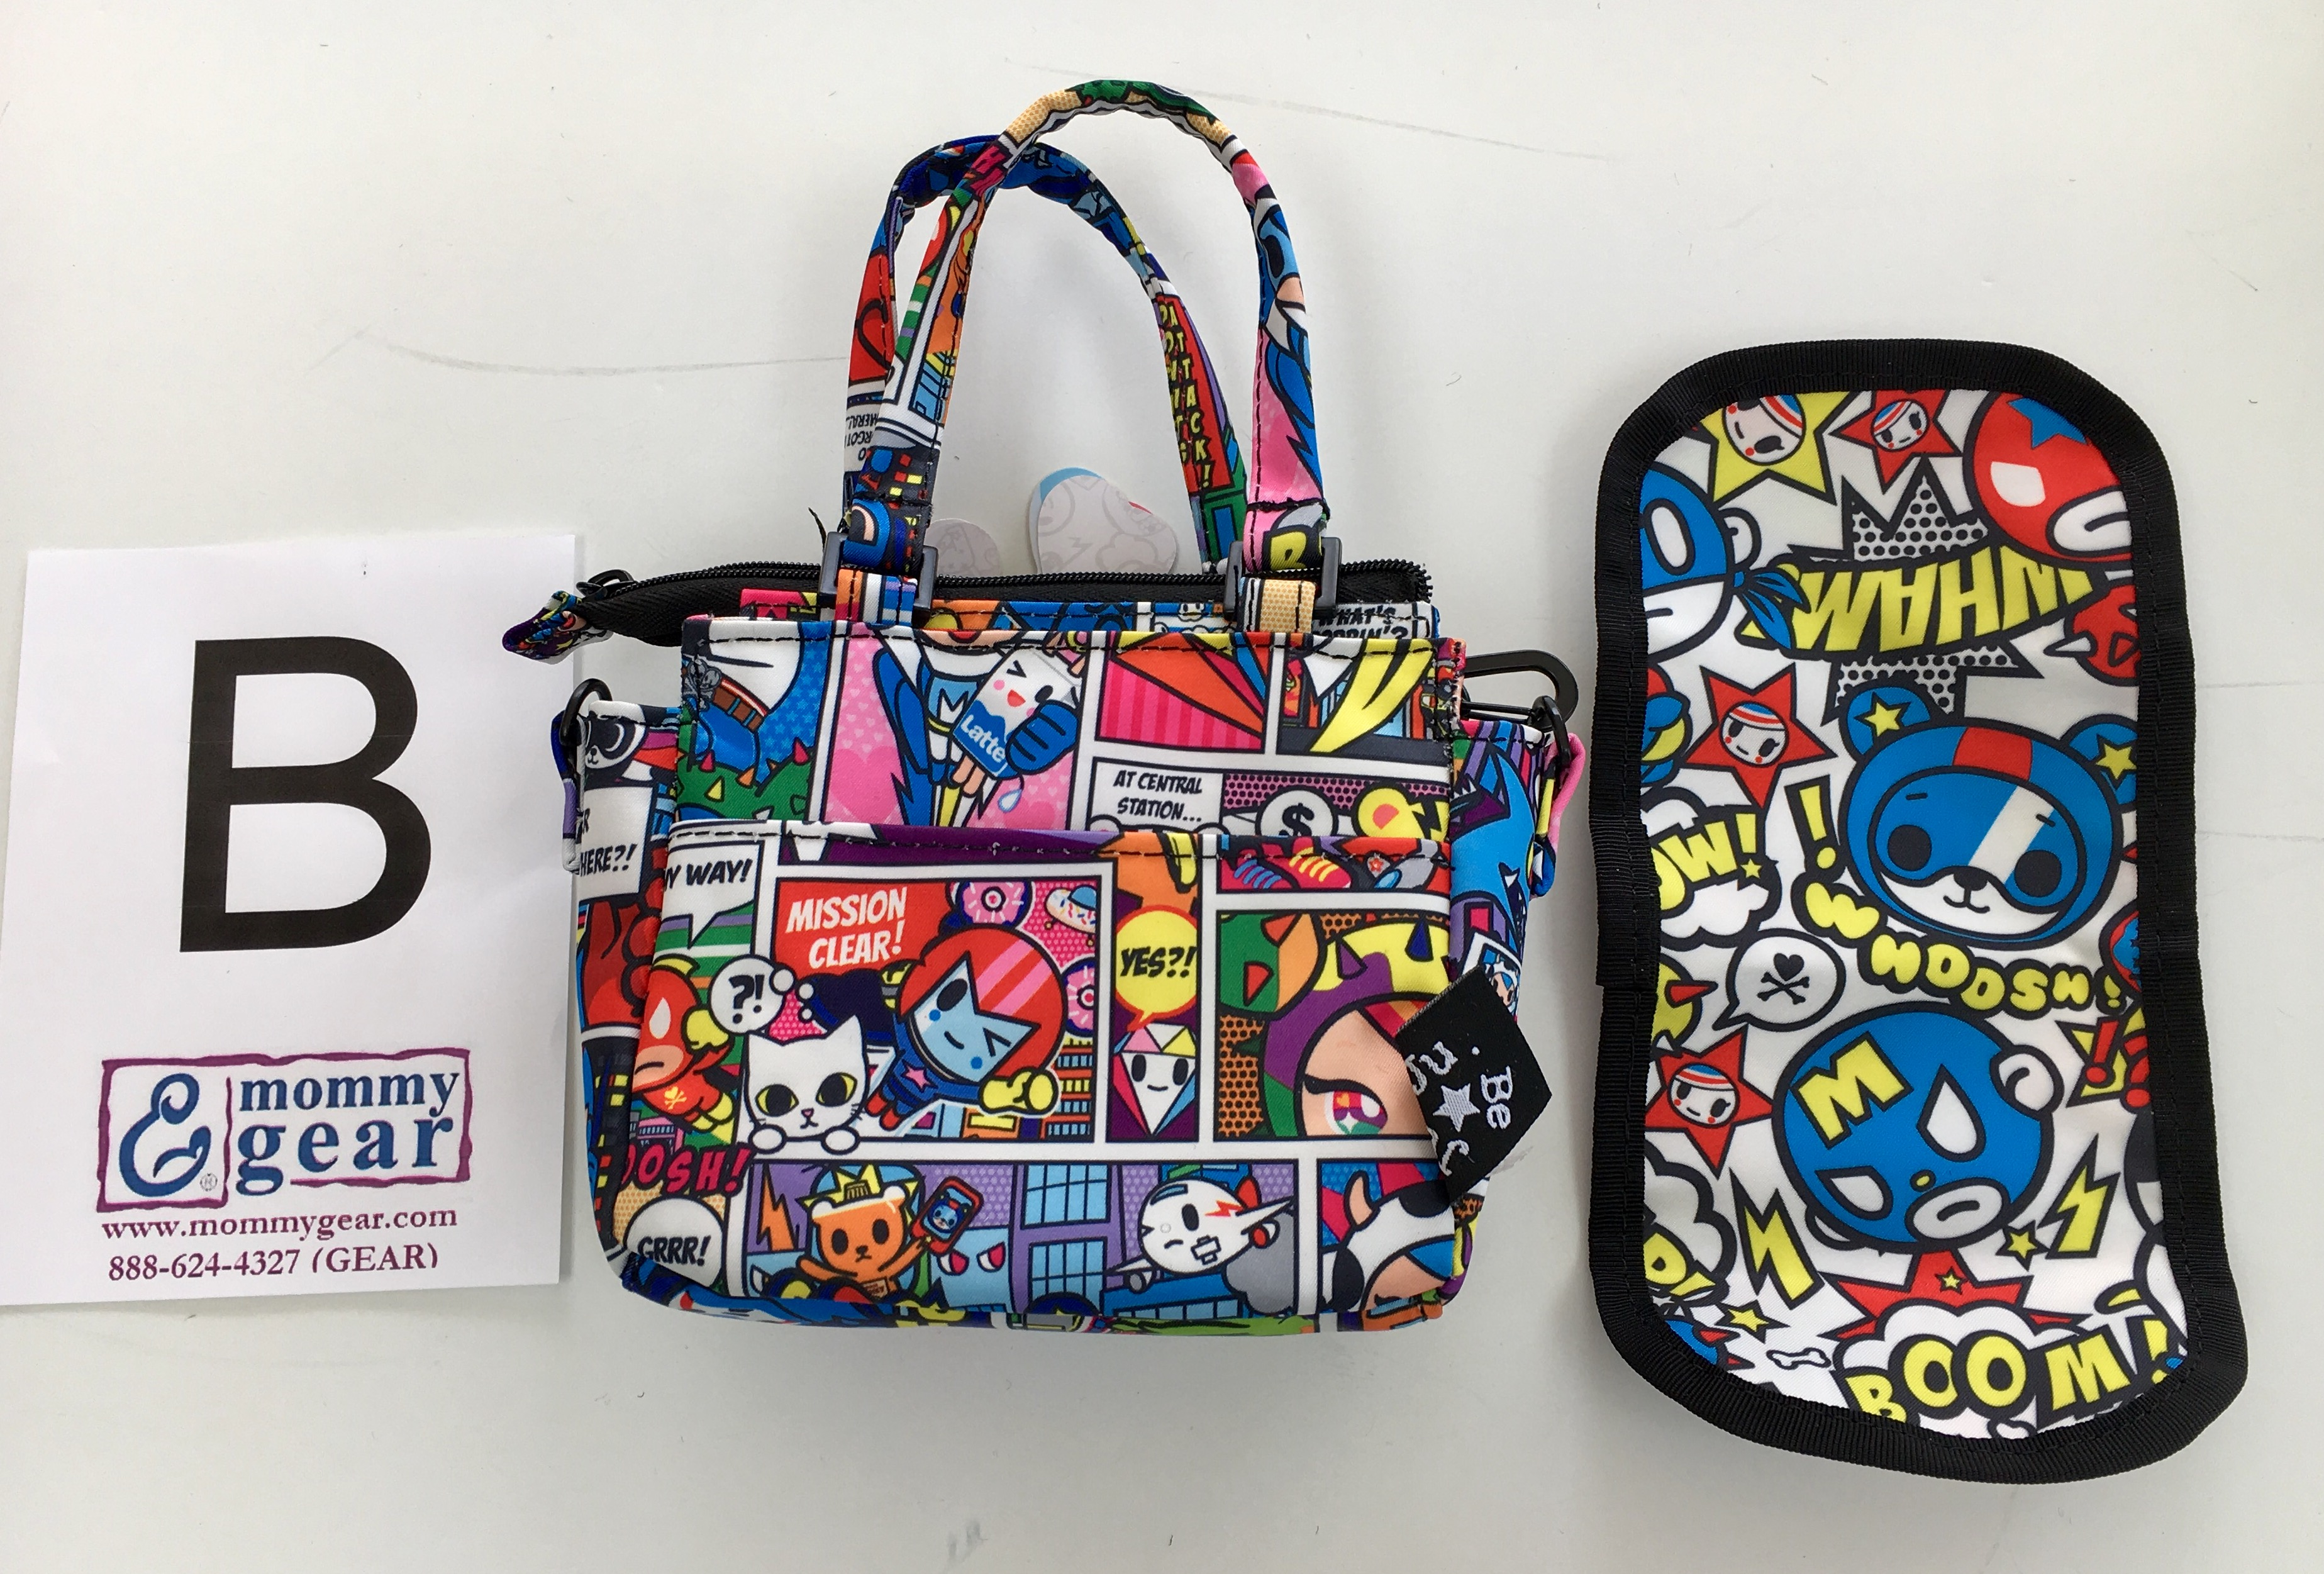 ju-ju-be-tokidoki-supertoki-itty-bitty-pp-b-2